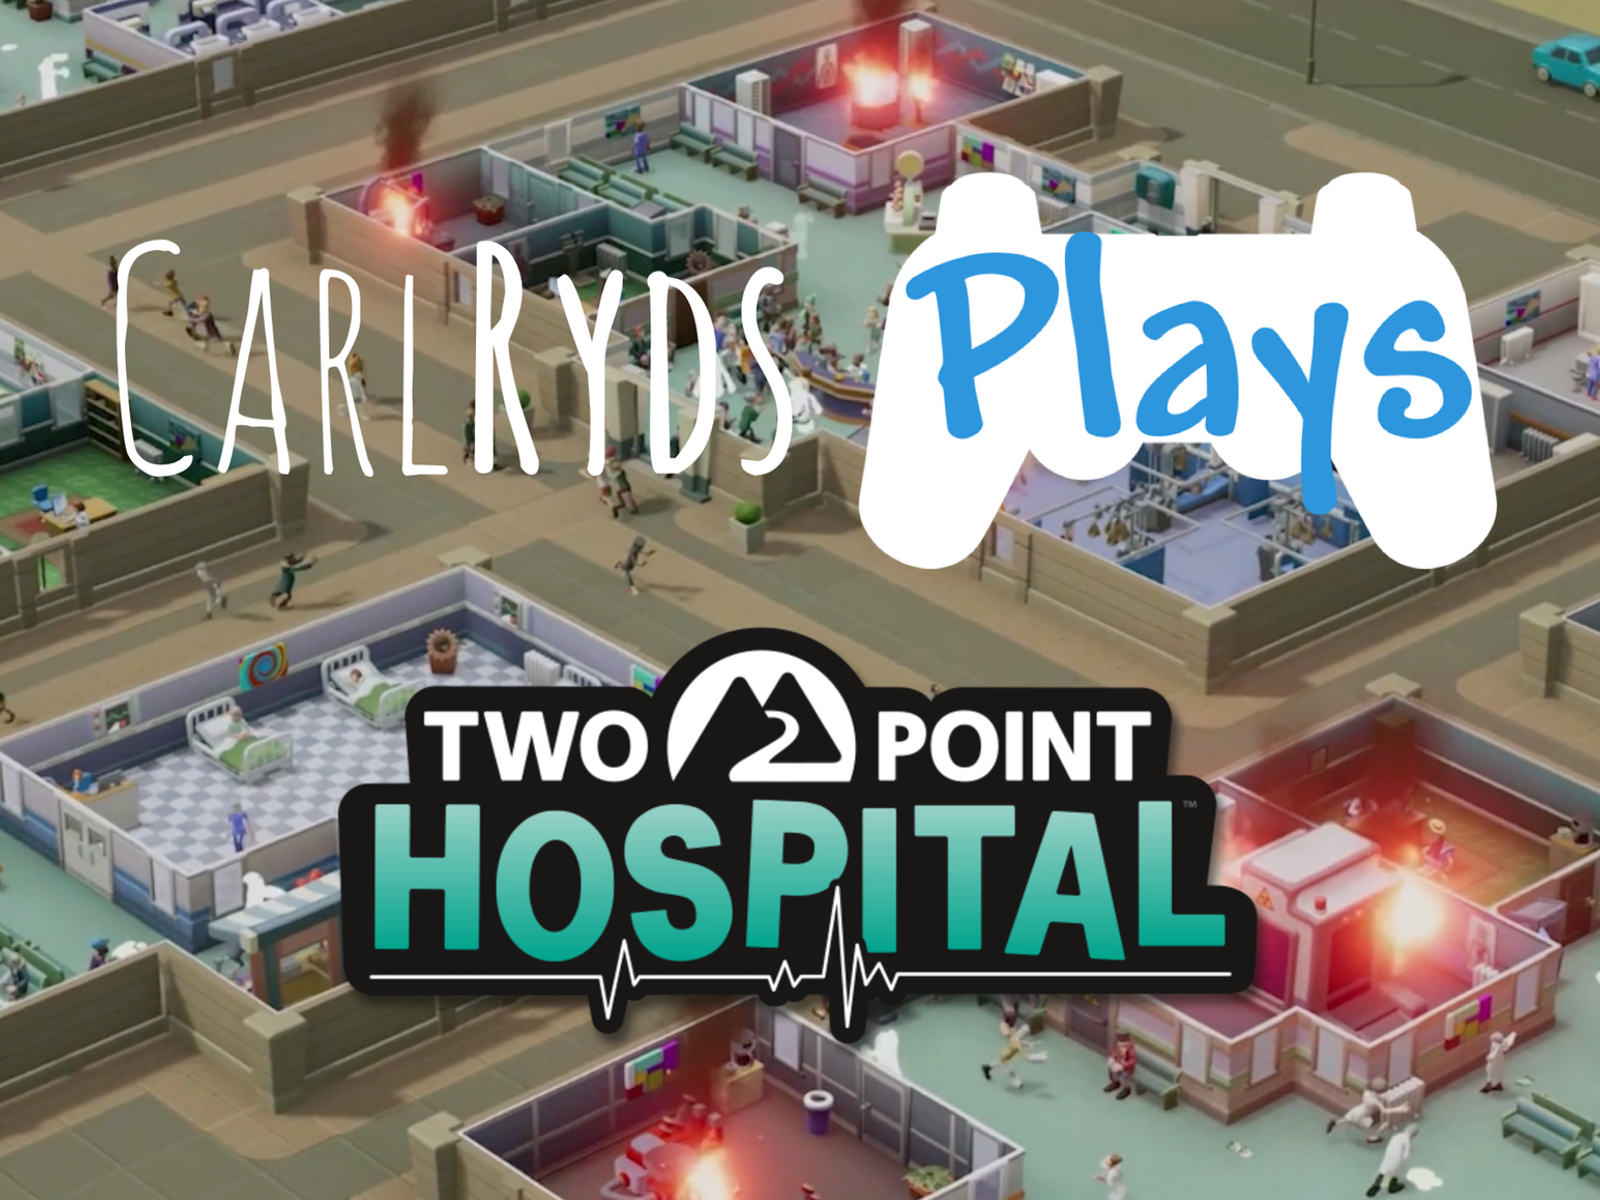 CarlRyds plays Two Point Hospital